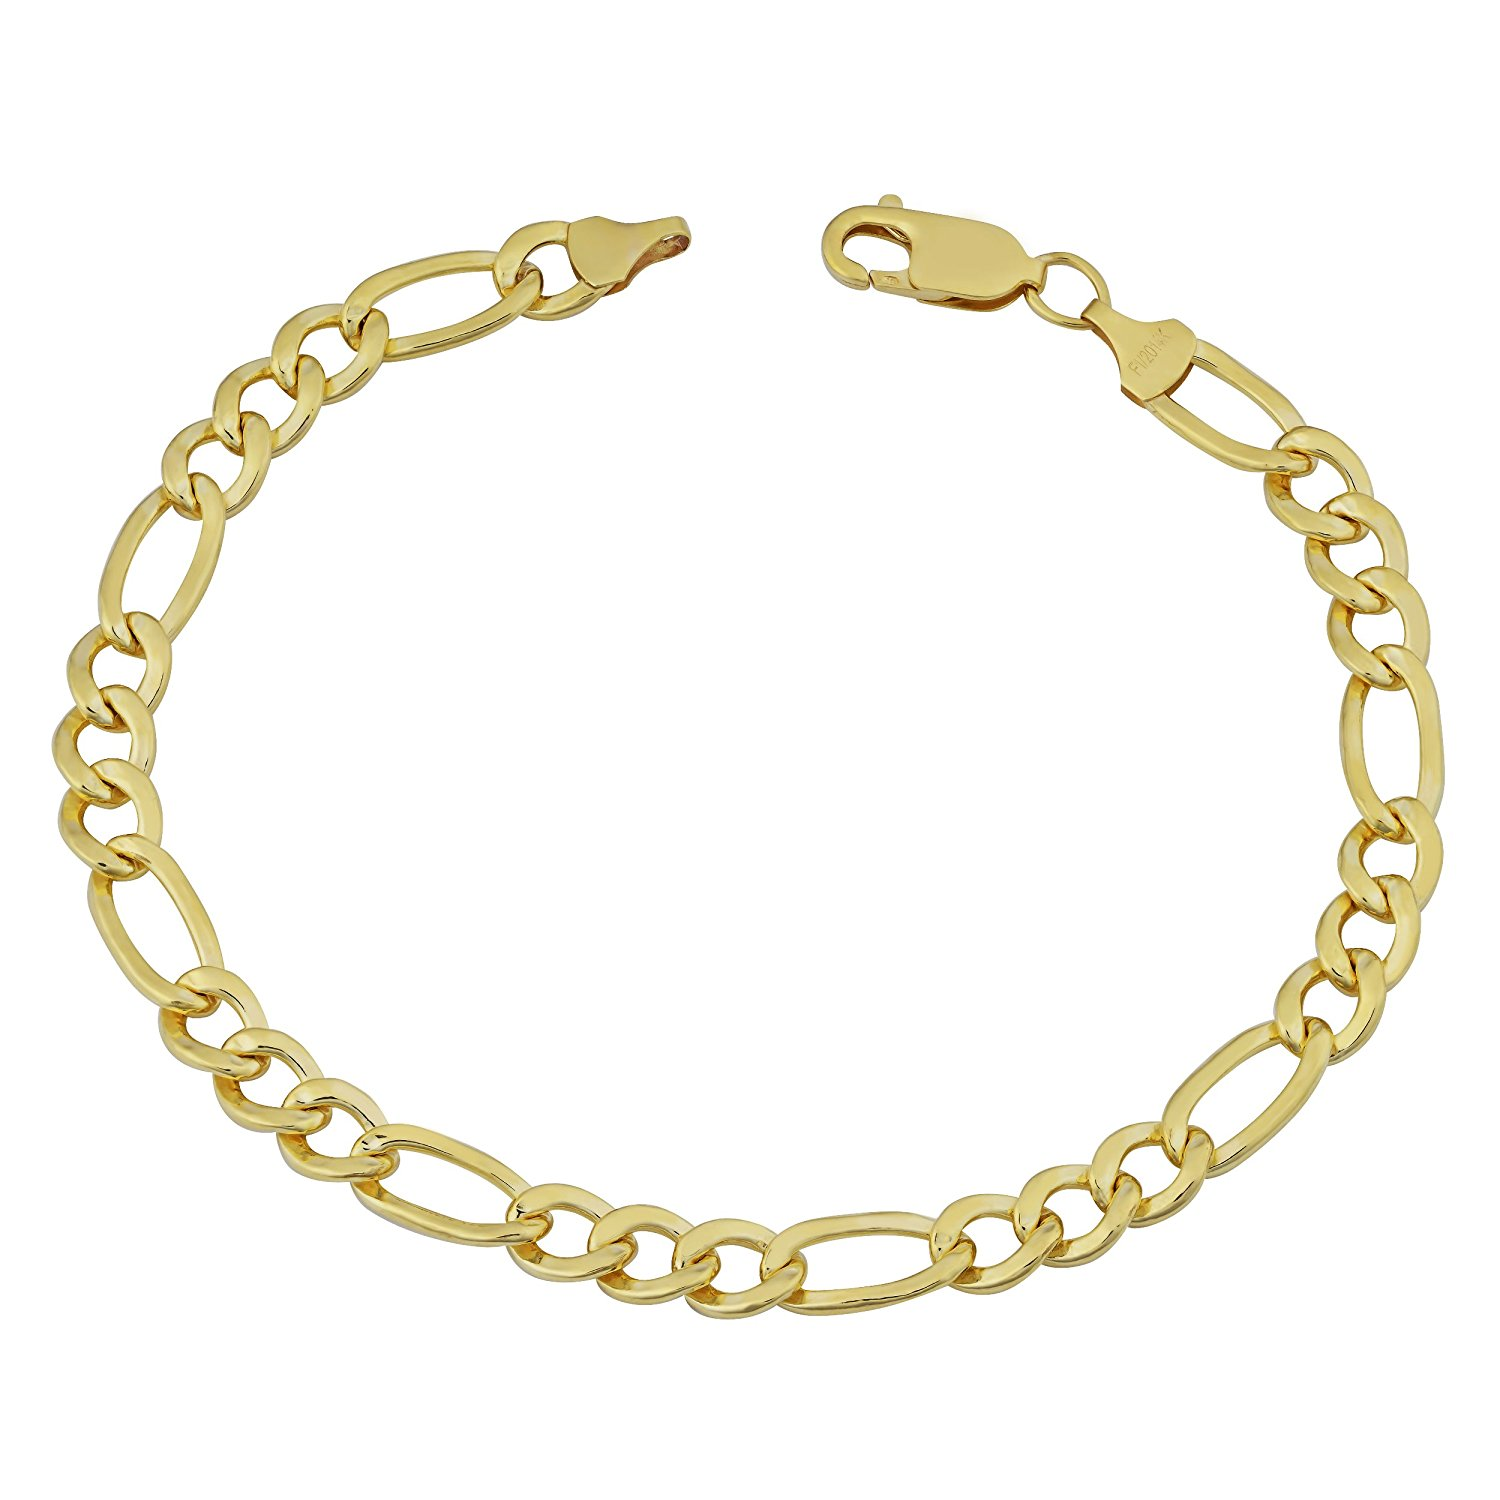 14K Yellow Gold Filled Solid Figaro Chain Bracelet, 6.0 mm, 8.5″